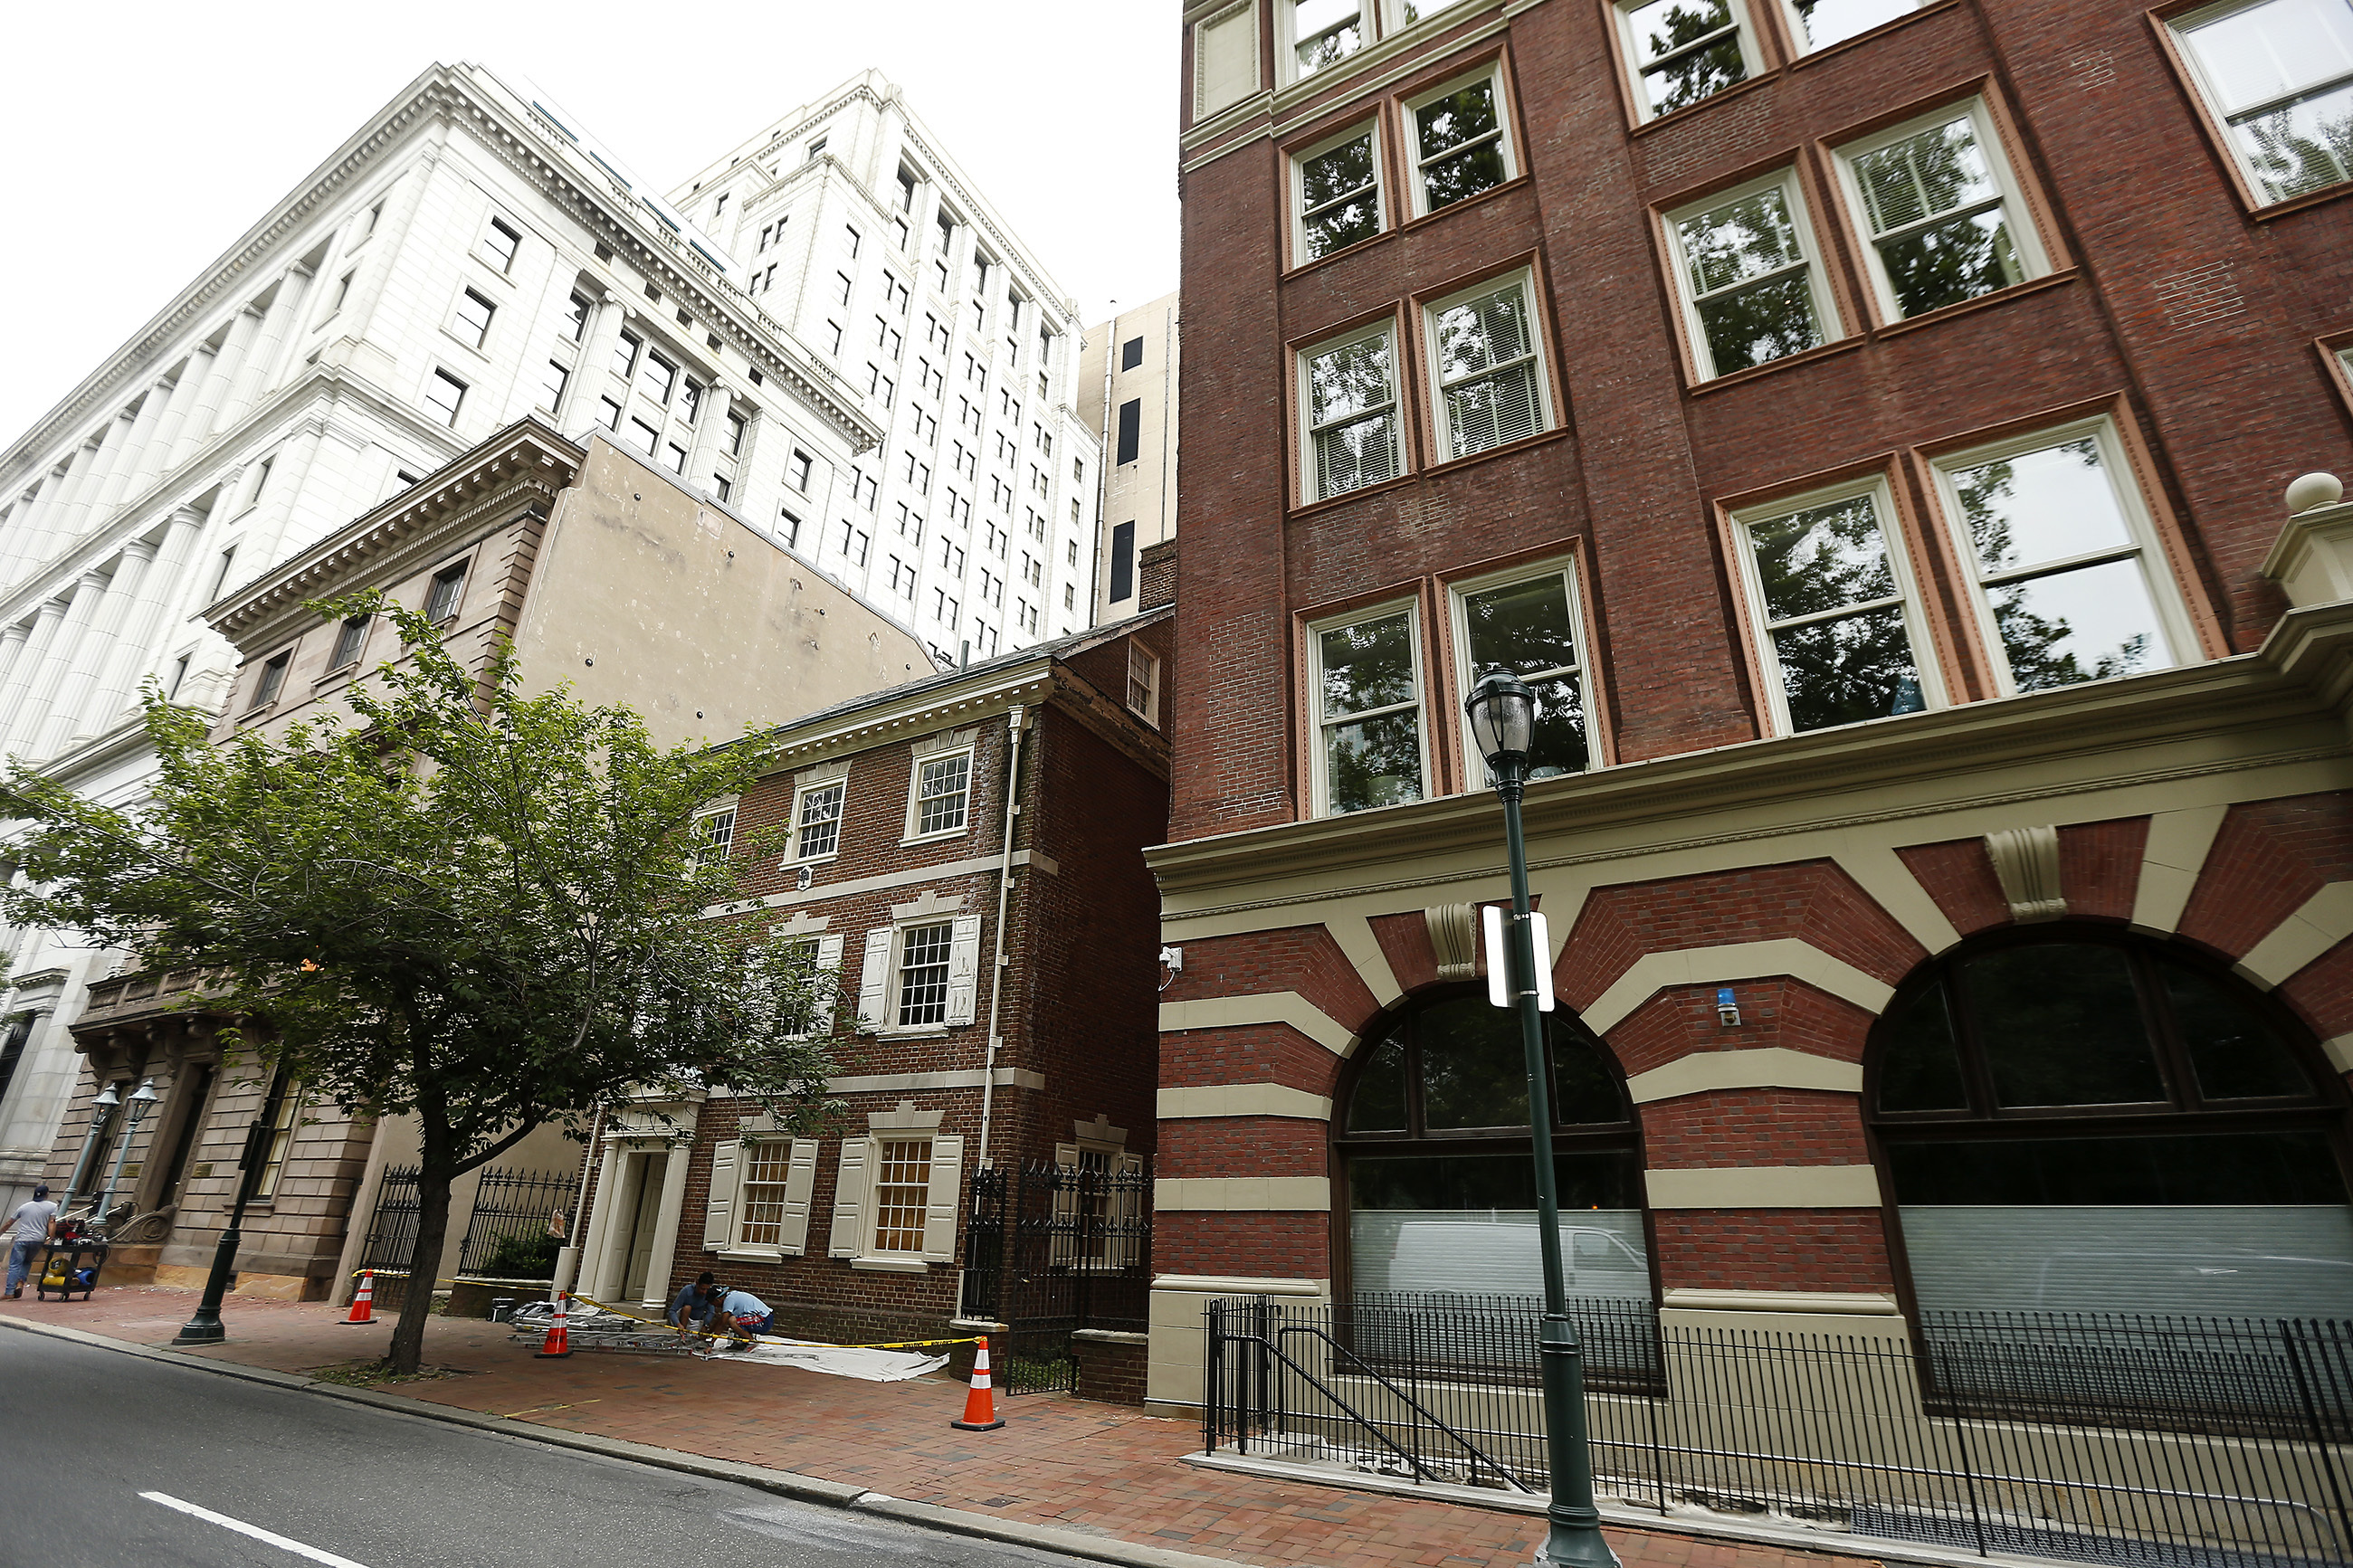 A view of the 200 block of S. 6th Street, including the Dilworth House, center. (DAVID MAIALETTI / Staff Photographer)